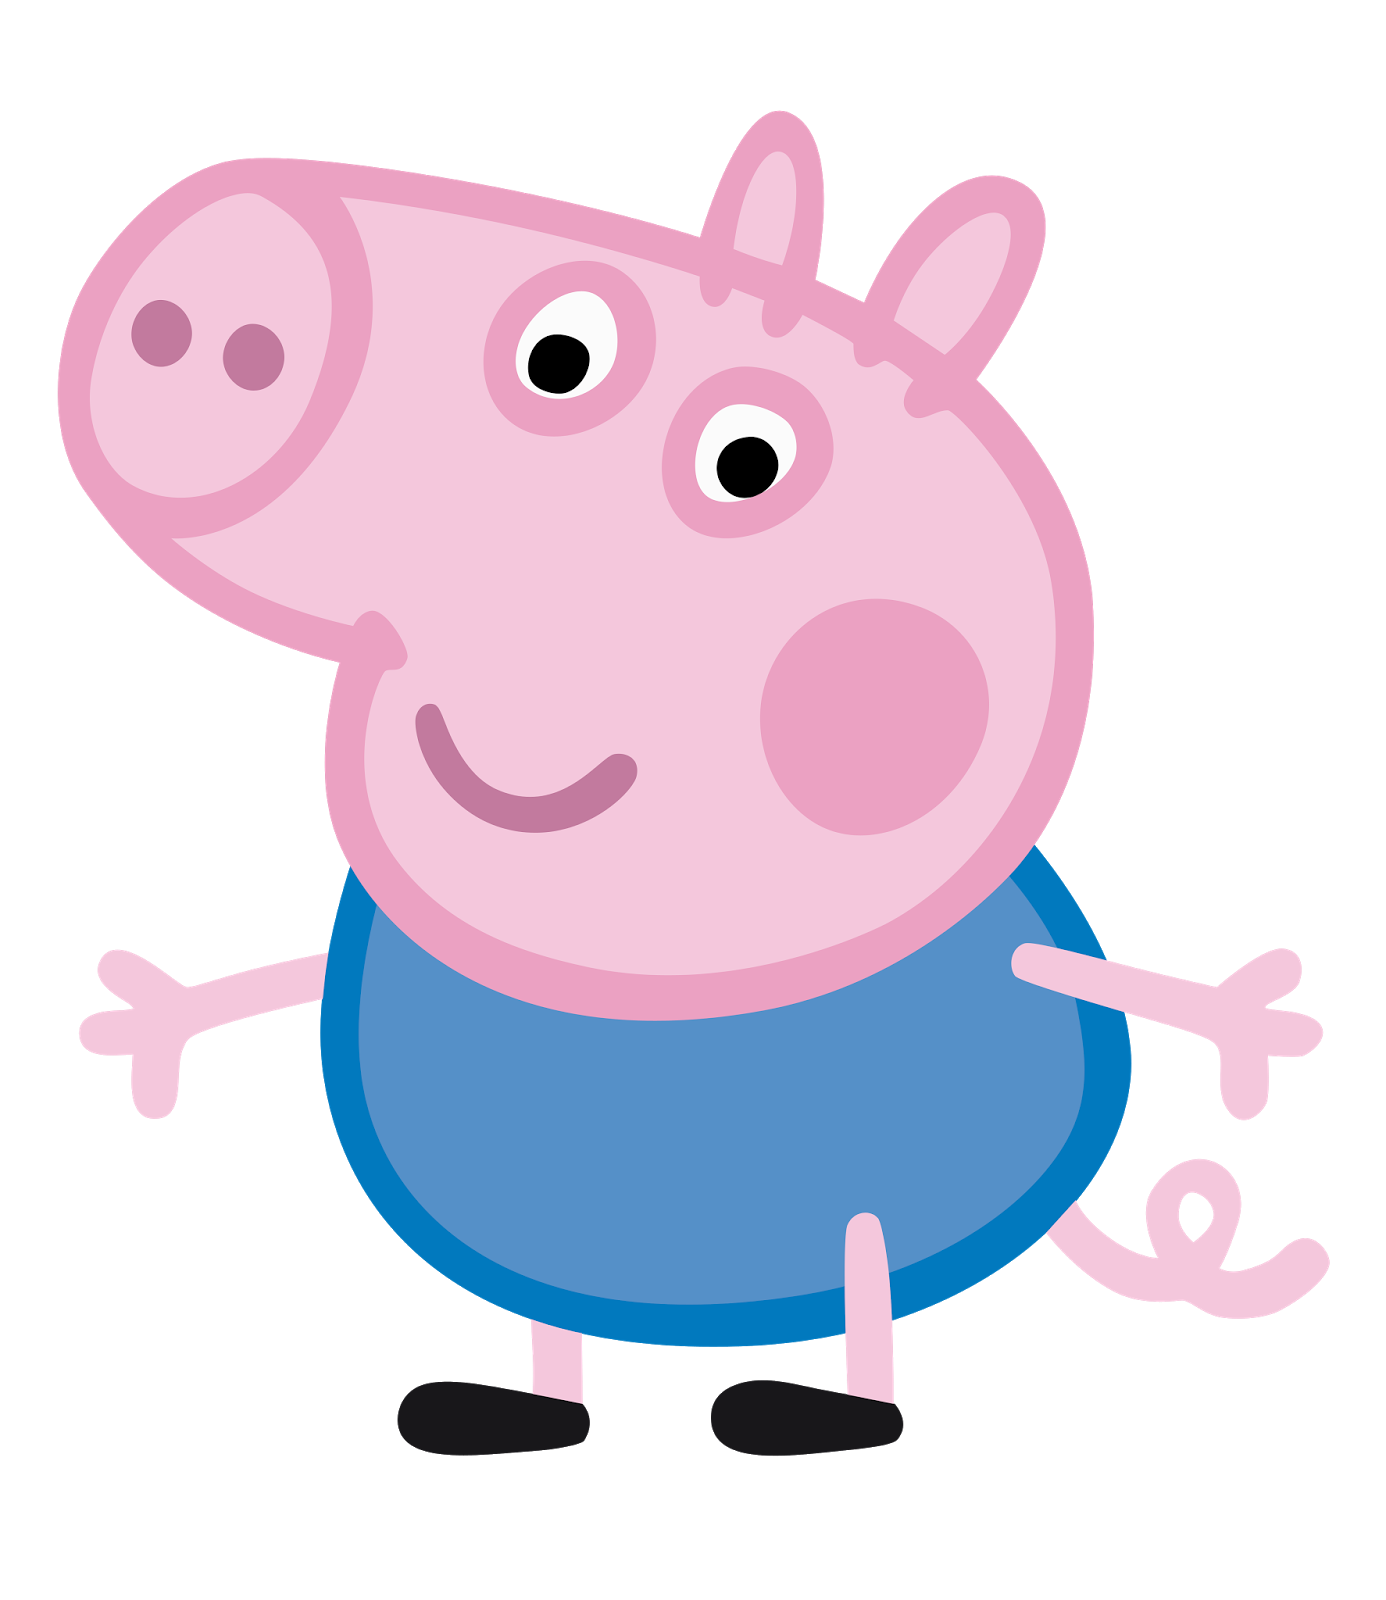 Peppa pig bailarina png. George pixels crafts to